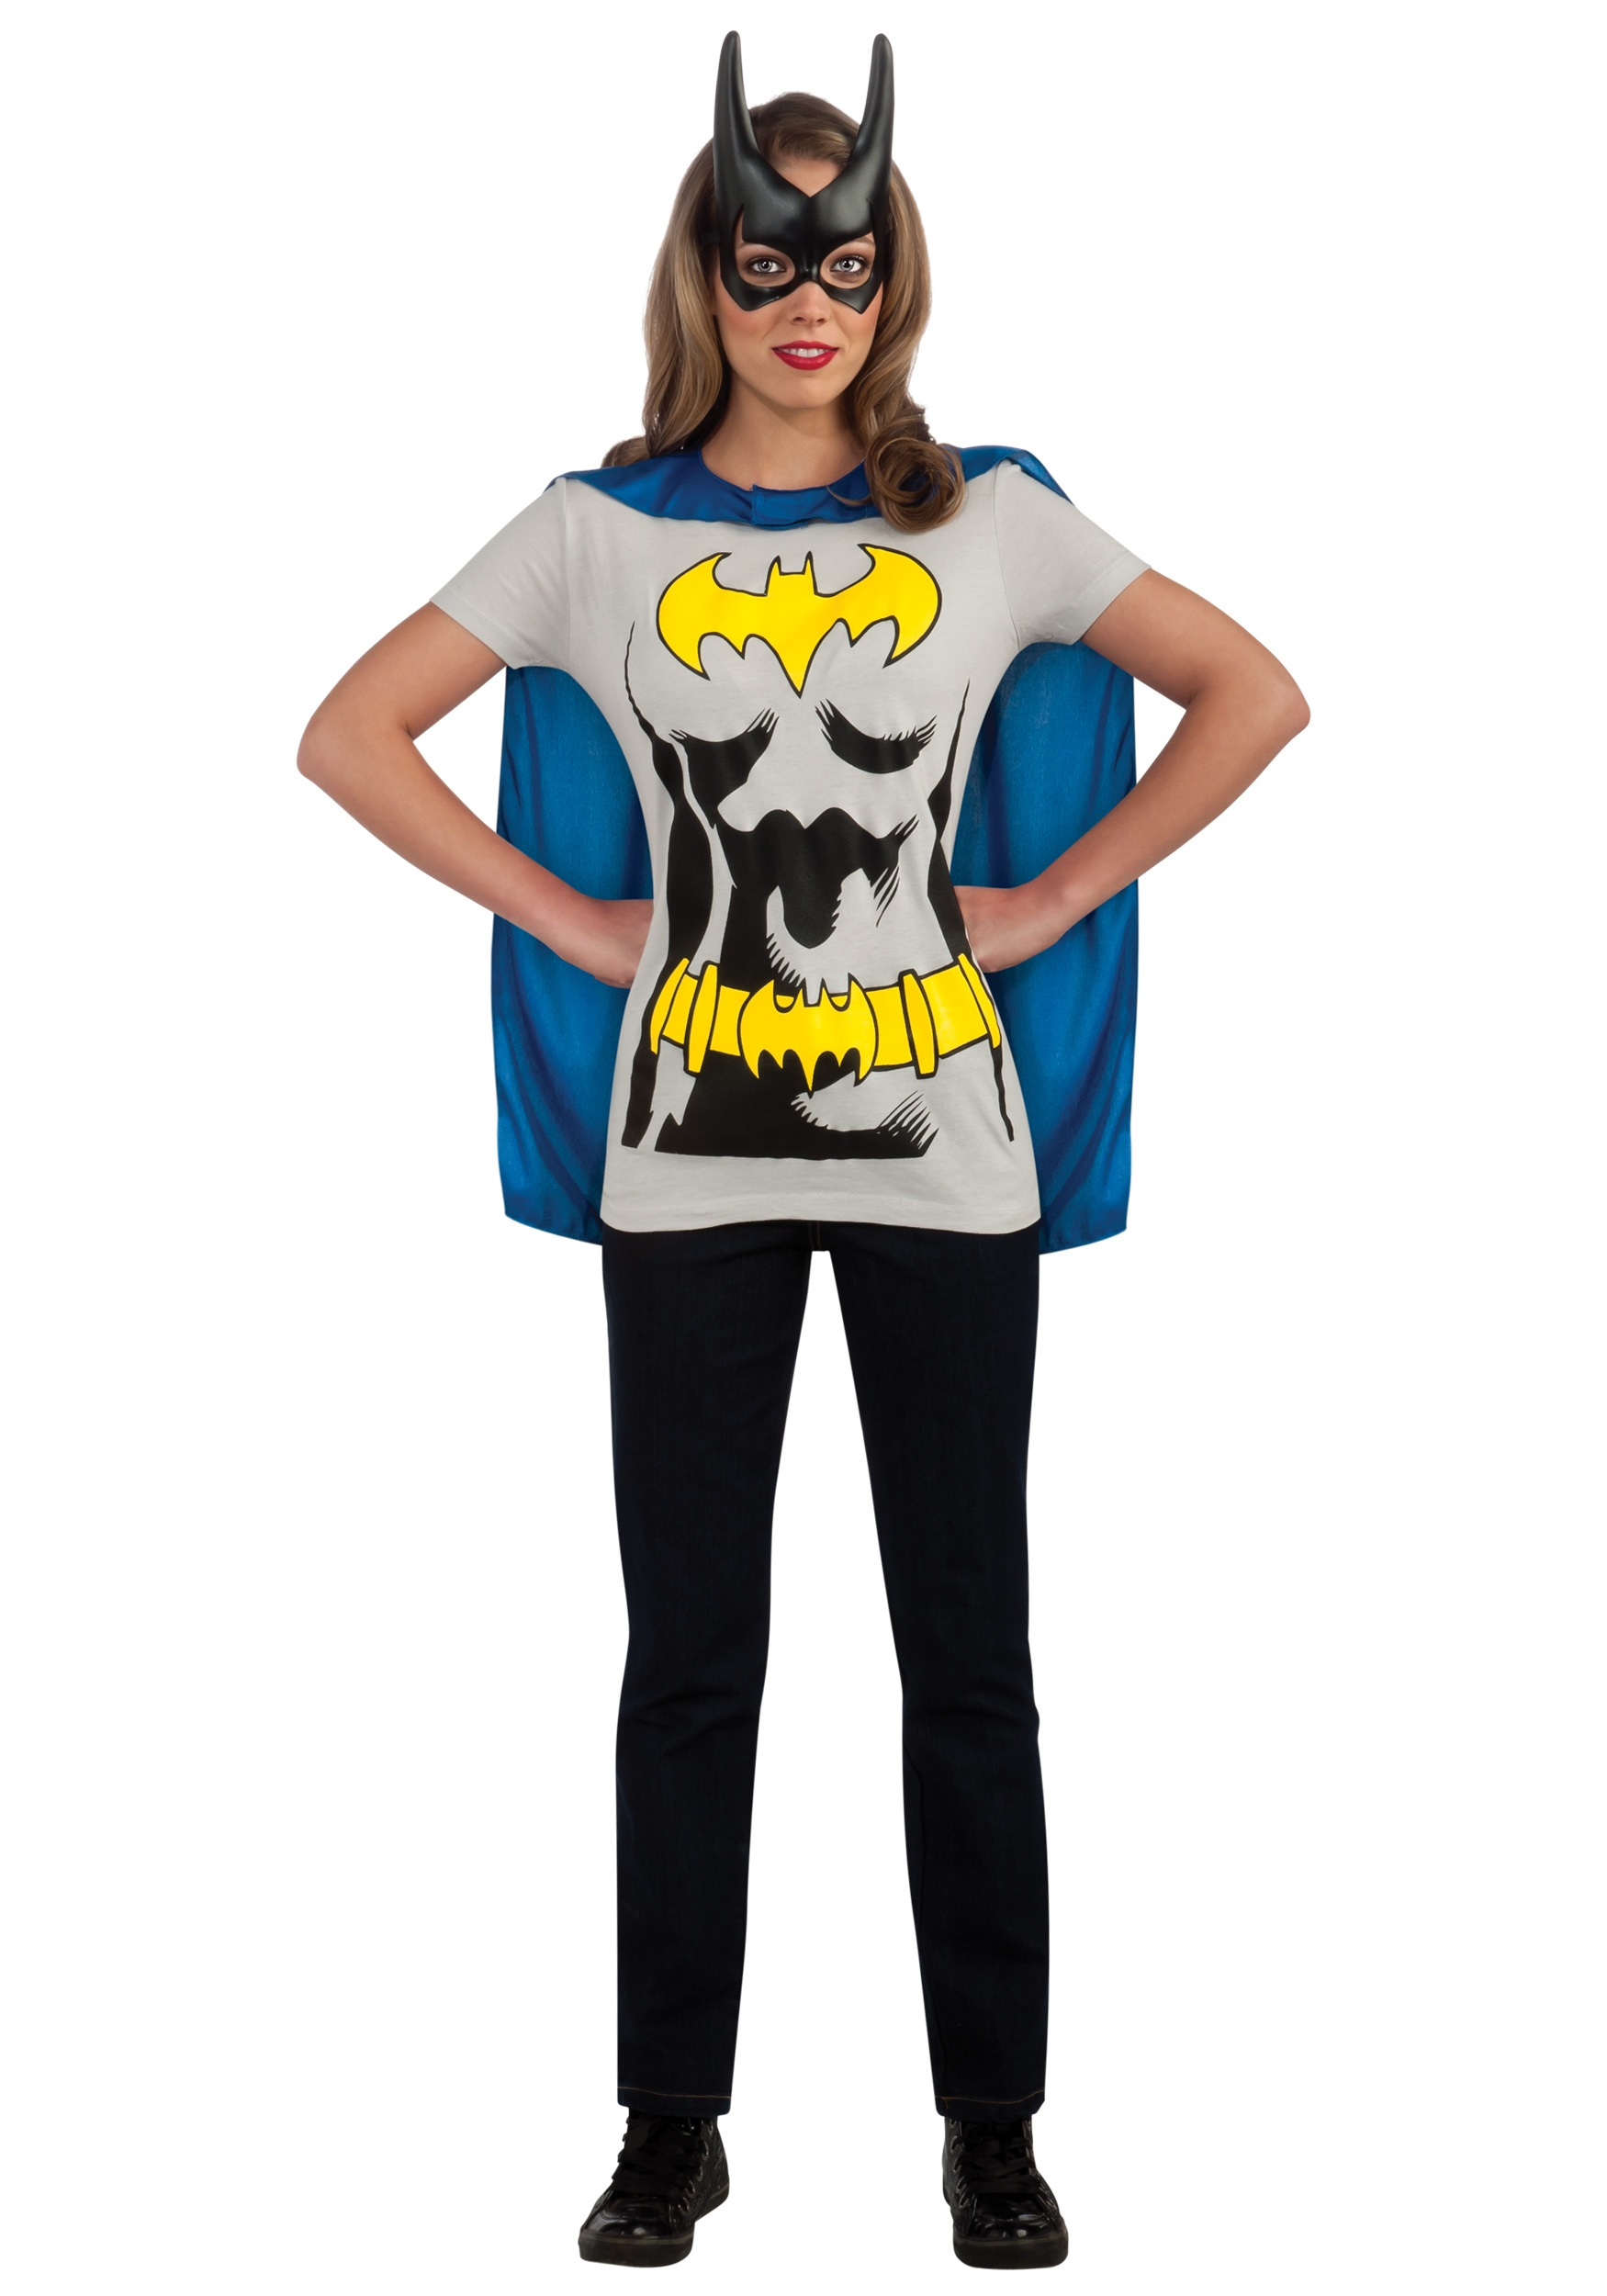 Batgirl t shirt costume for Costume t shirts online